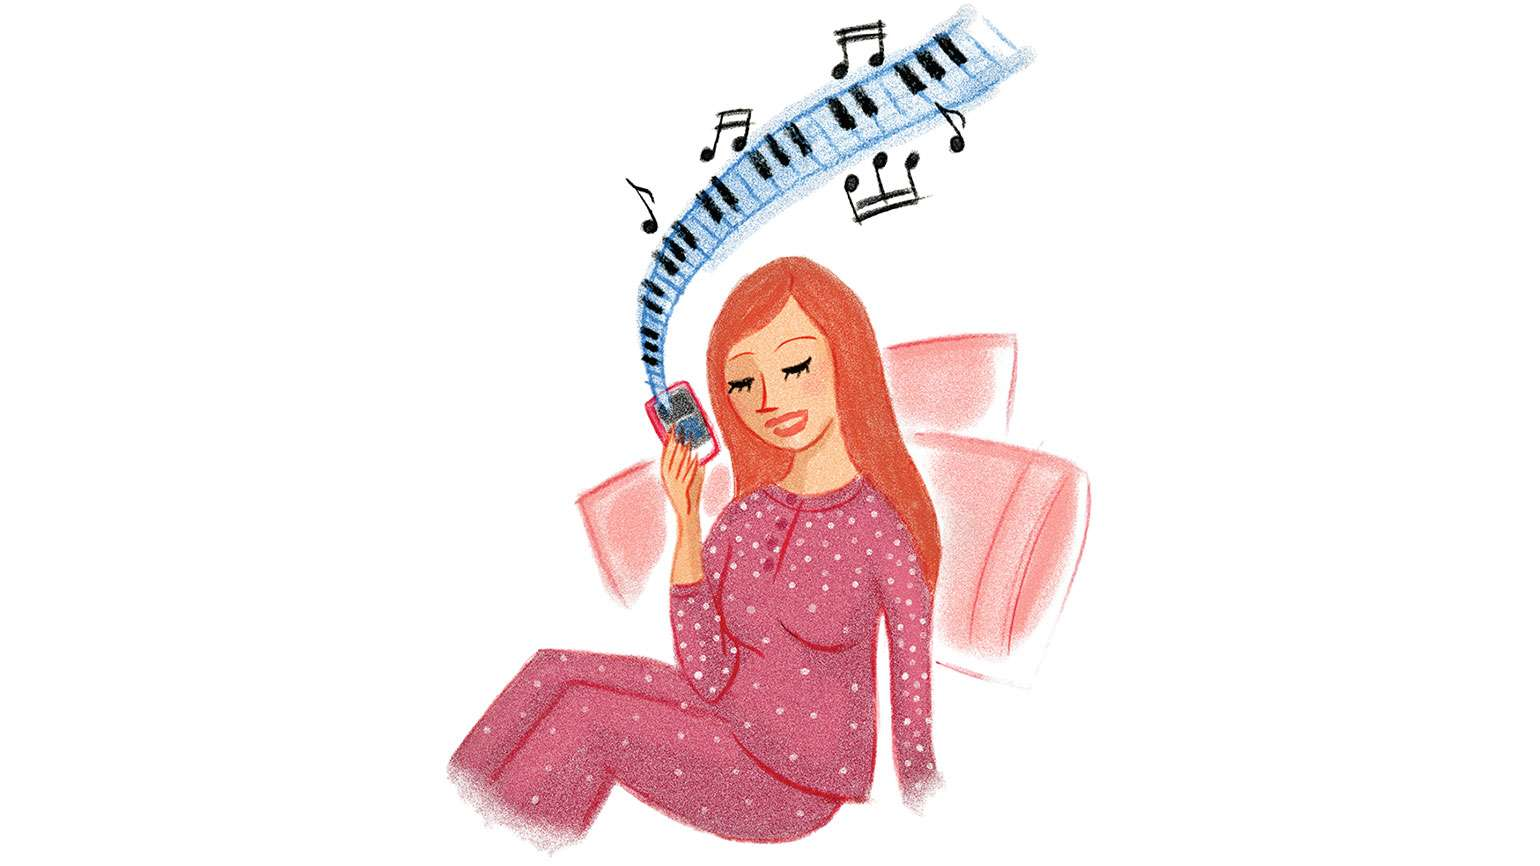 An artist's rendering of a woman listening to comforting music on her phone